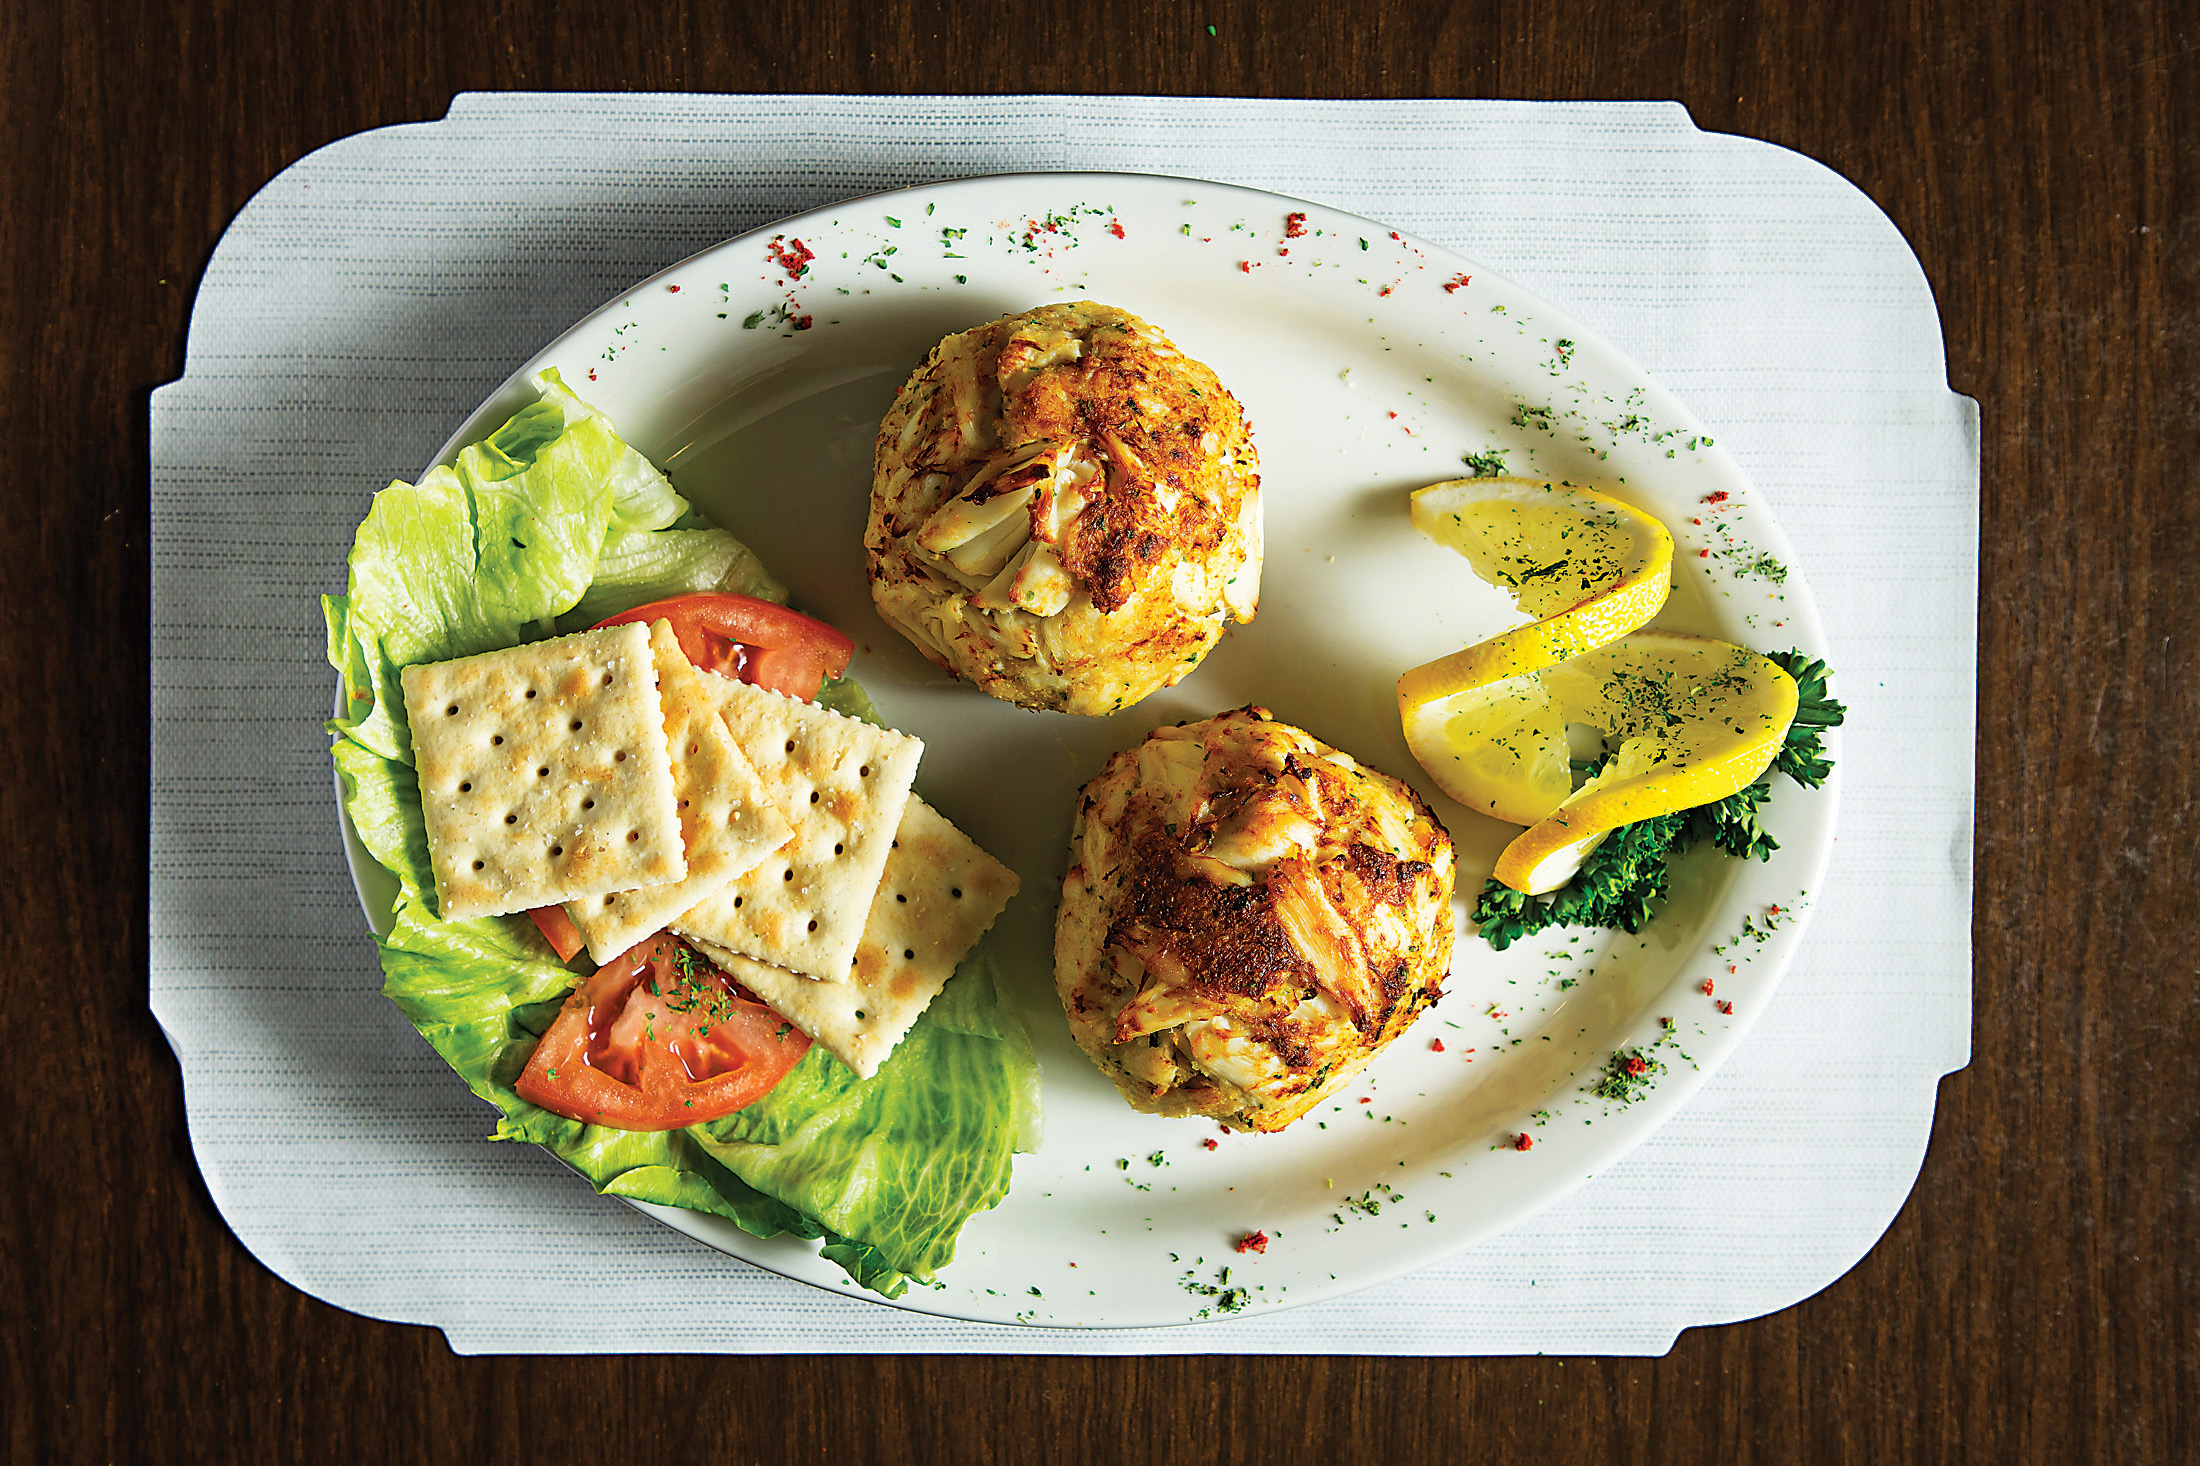 The 25 Best Crab Cakes in Baltimore